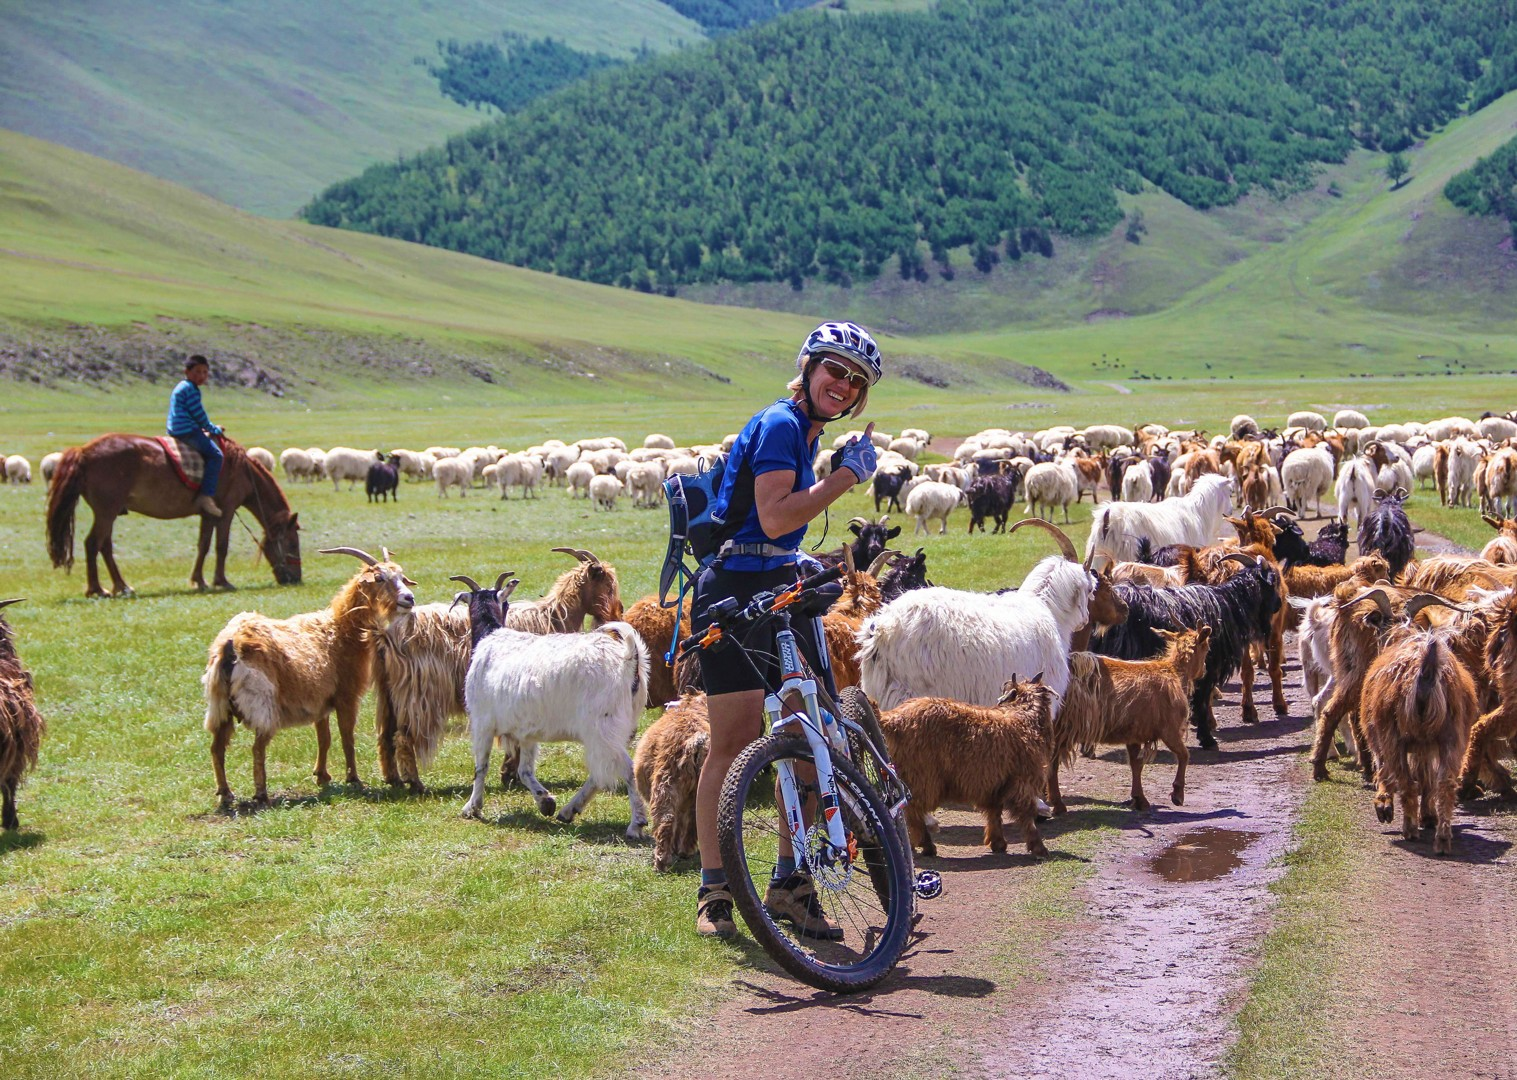 mongolia-cycle-through-true-wilderness.jpg - NEW! Mongolia - Route of the Nomads - Cycling Adventures